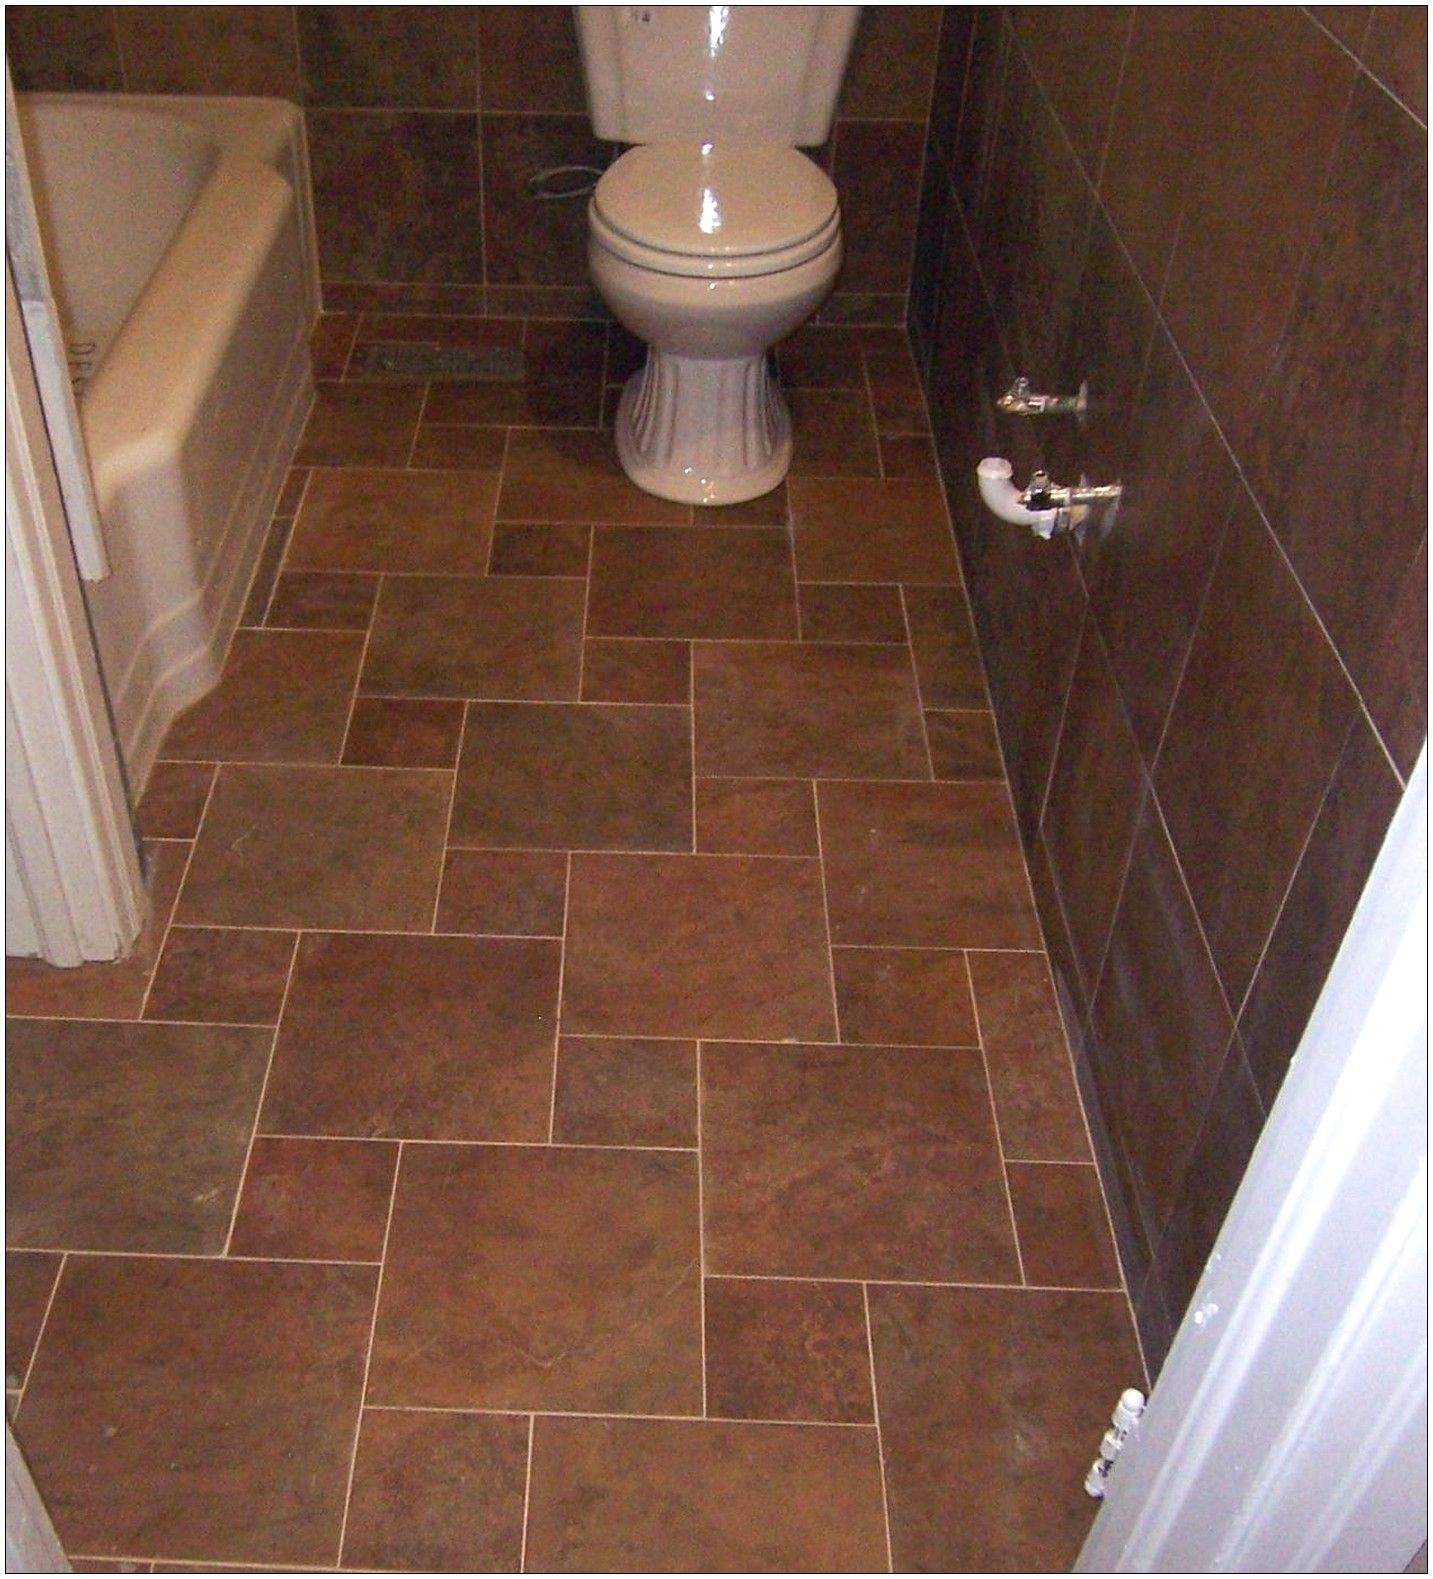 Bathroom floor tiles for small bathrooms downstairs bath bathroom floor tiles for small bathrooms dailygadgetfo Choice Image